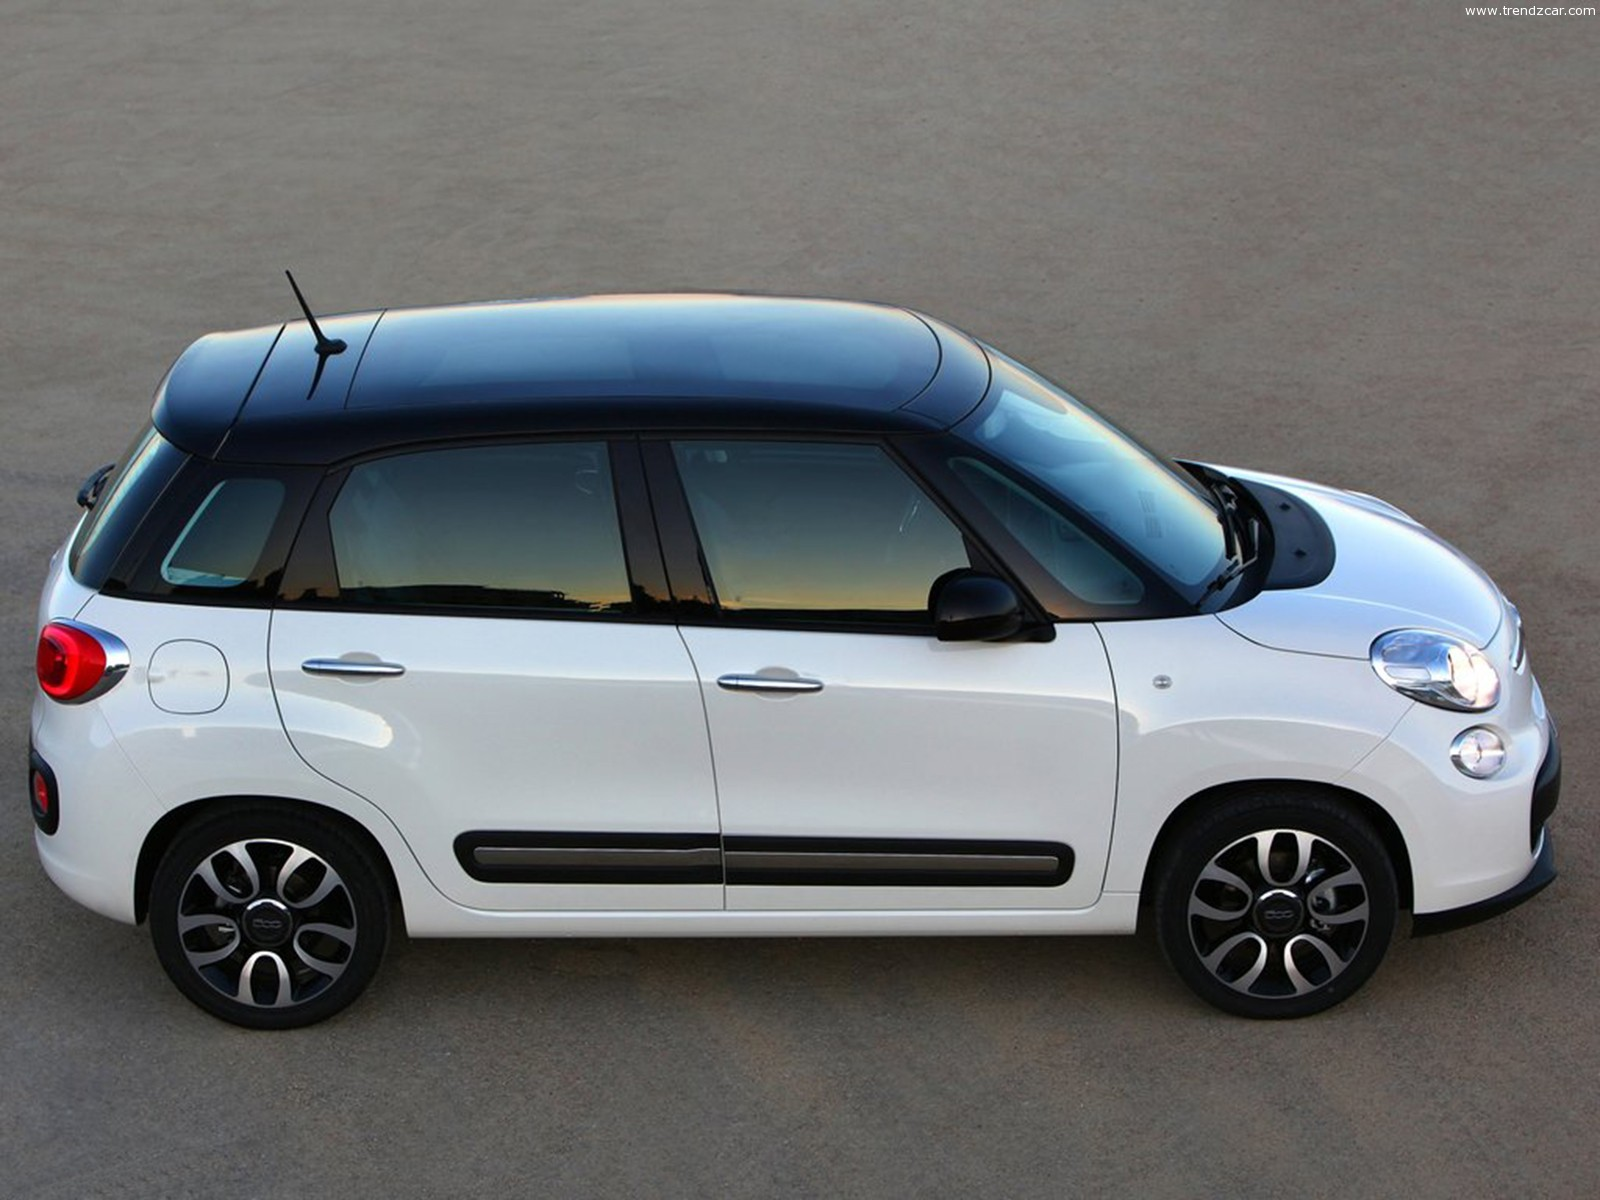 fiat 500l - review and photos